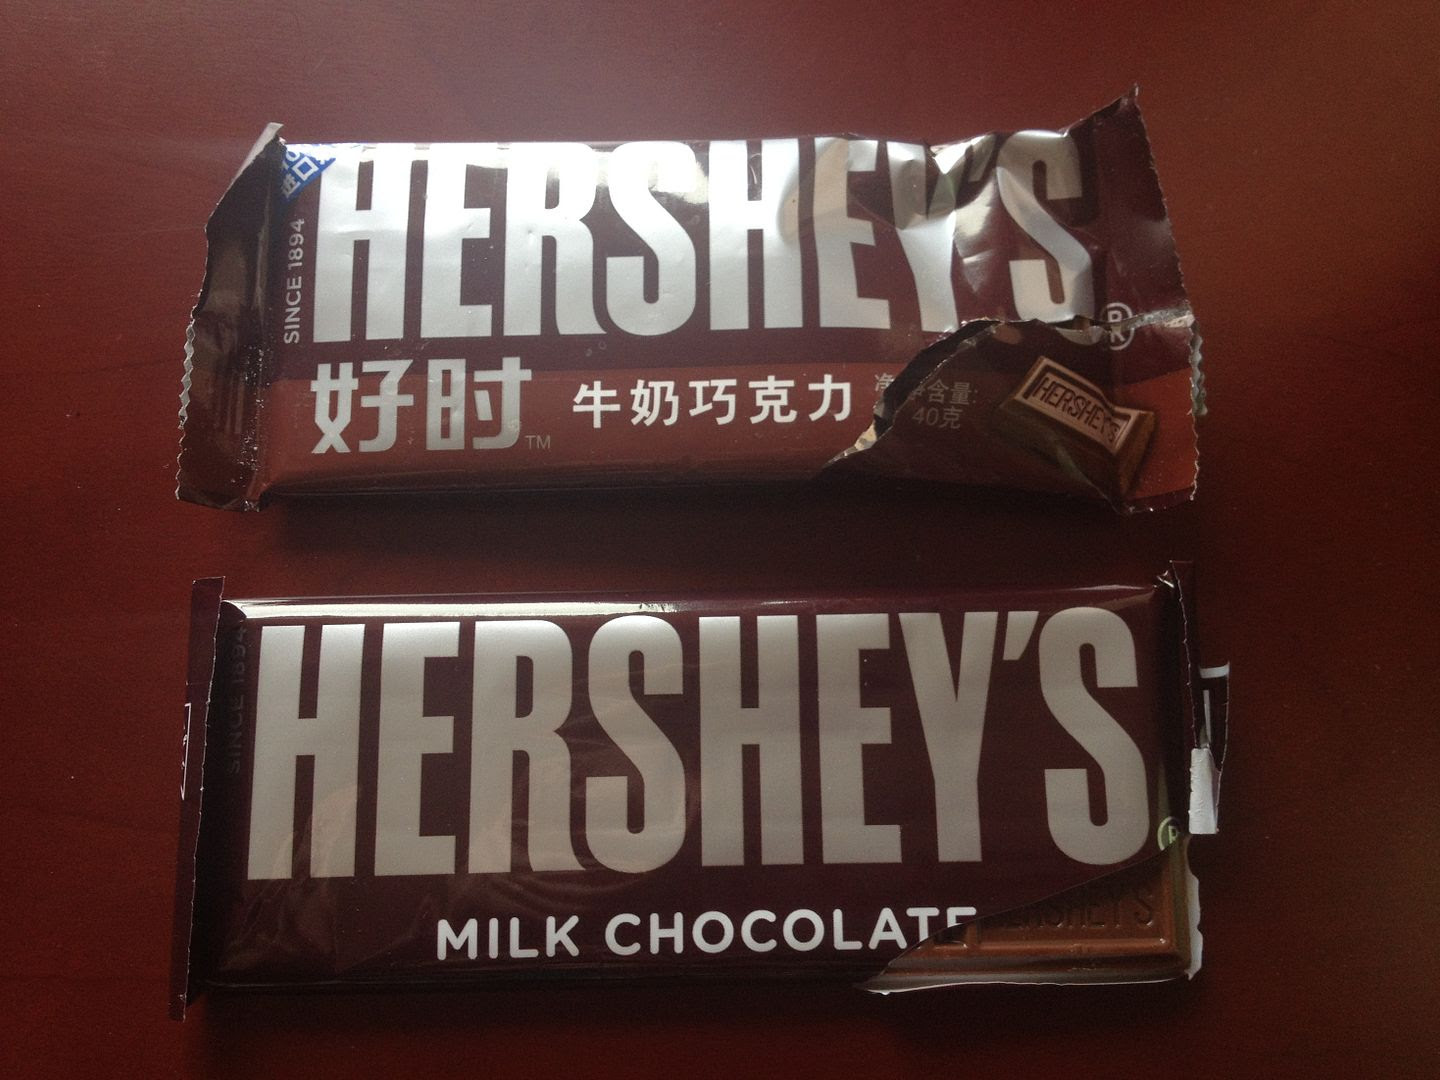 Hershey's: Chinese vs. American photo 2014-04-25123734_zpsc740ee8c.jpg